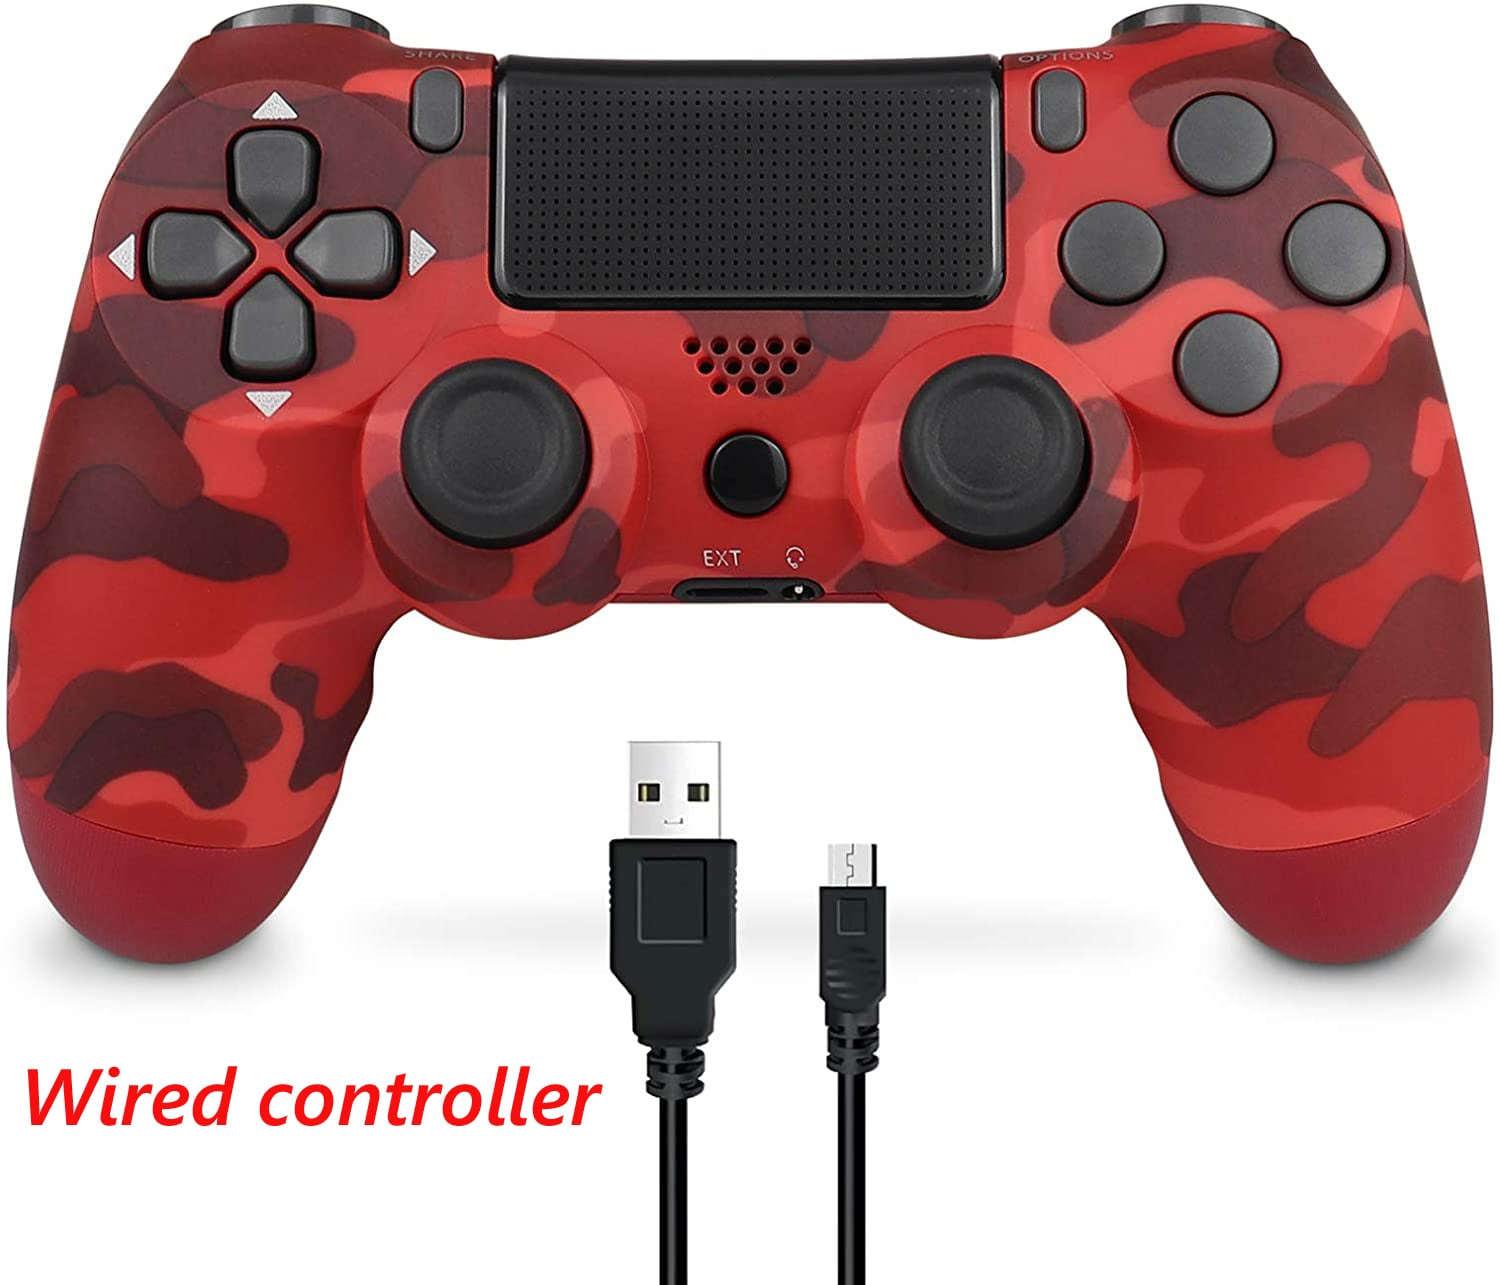 PS4 Wired Controller Dual Shock 4 Gamepad For Sony Playstation 4 Red Camouflage - 1